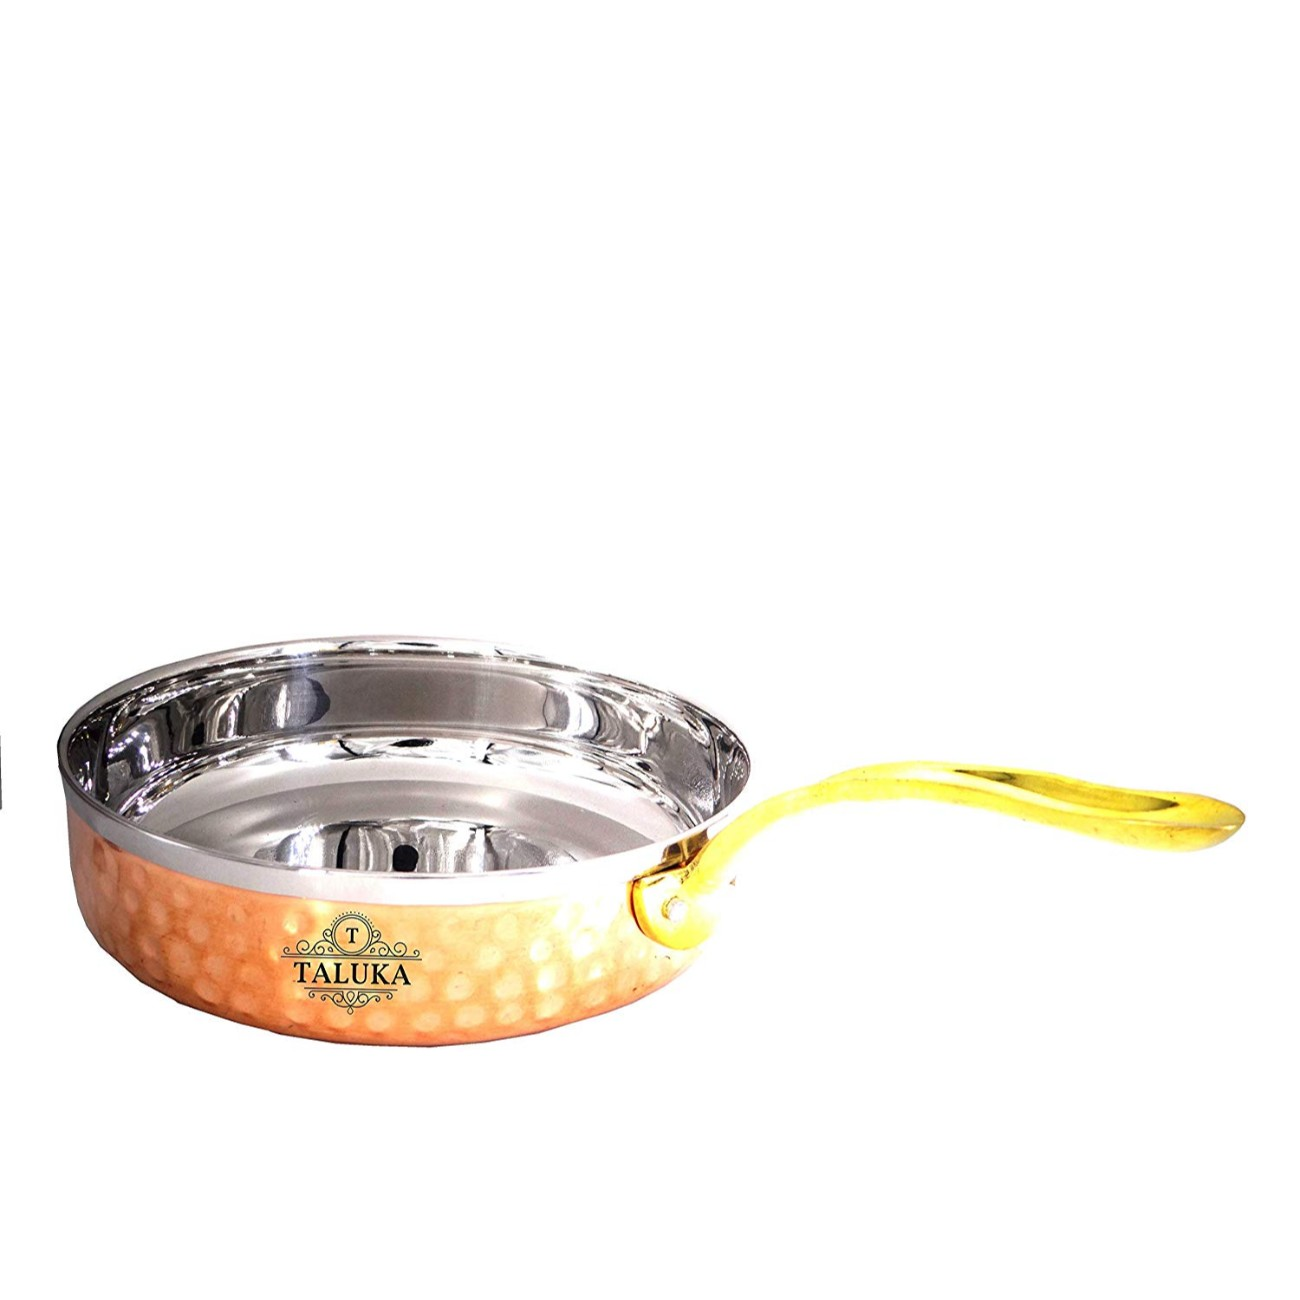 Stainless Steel Copper Fry Pan Tadka Pan Cooking Dishes Kitchen & Dining